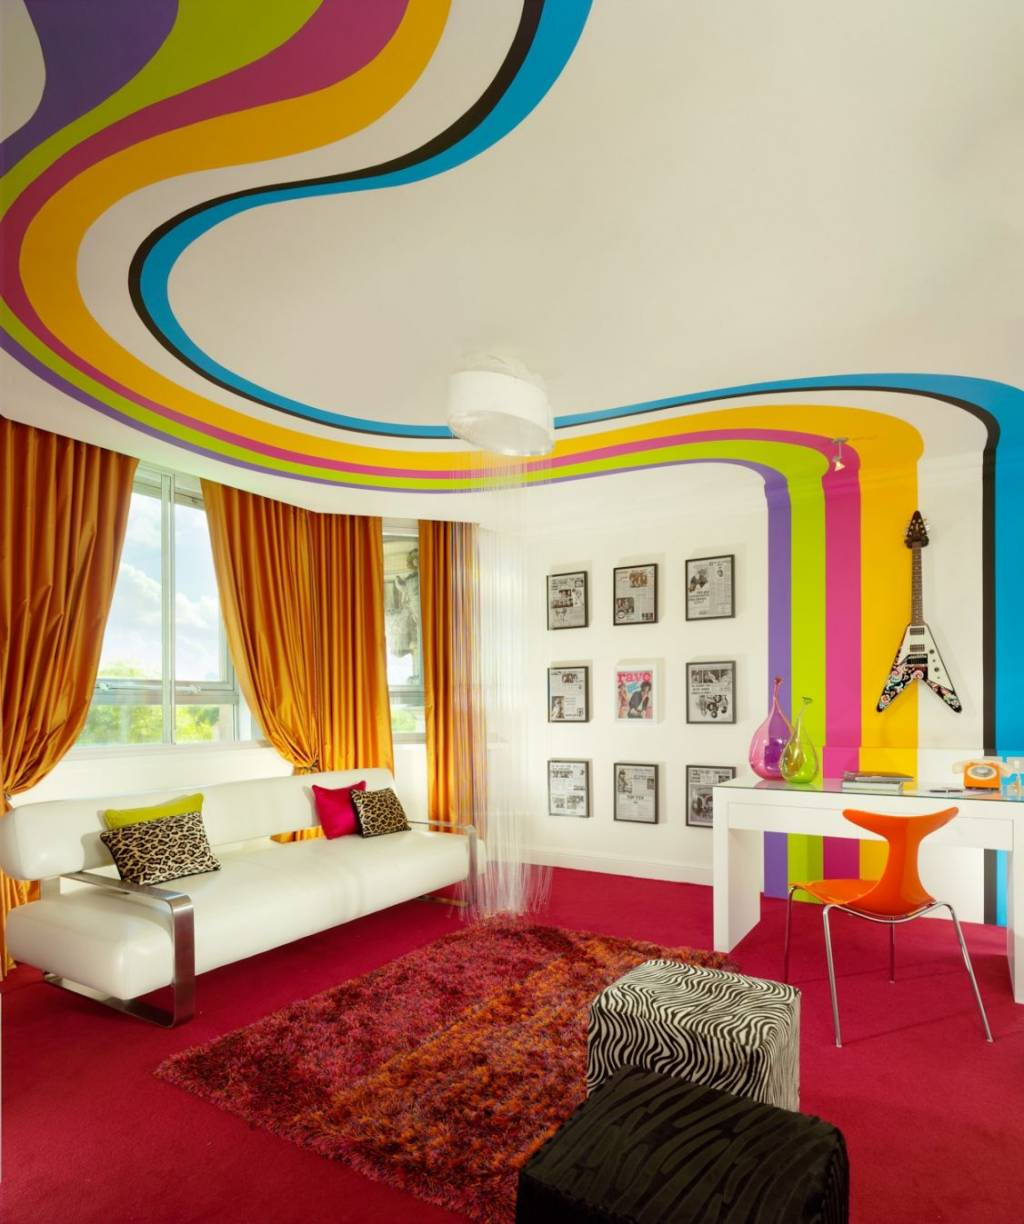 Celebrity s hotel rooms eccentric hotels